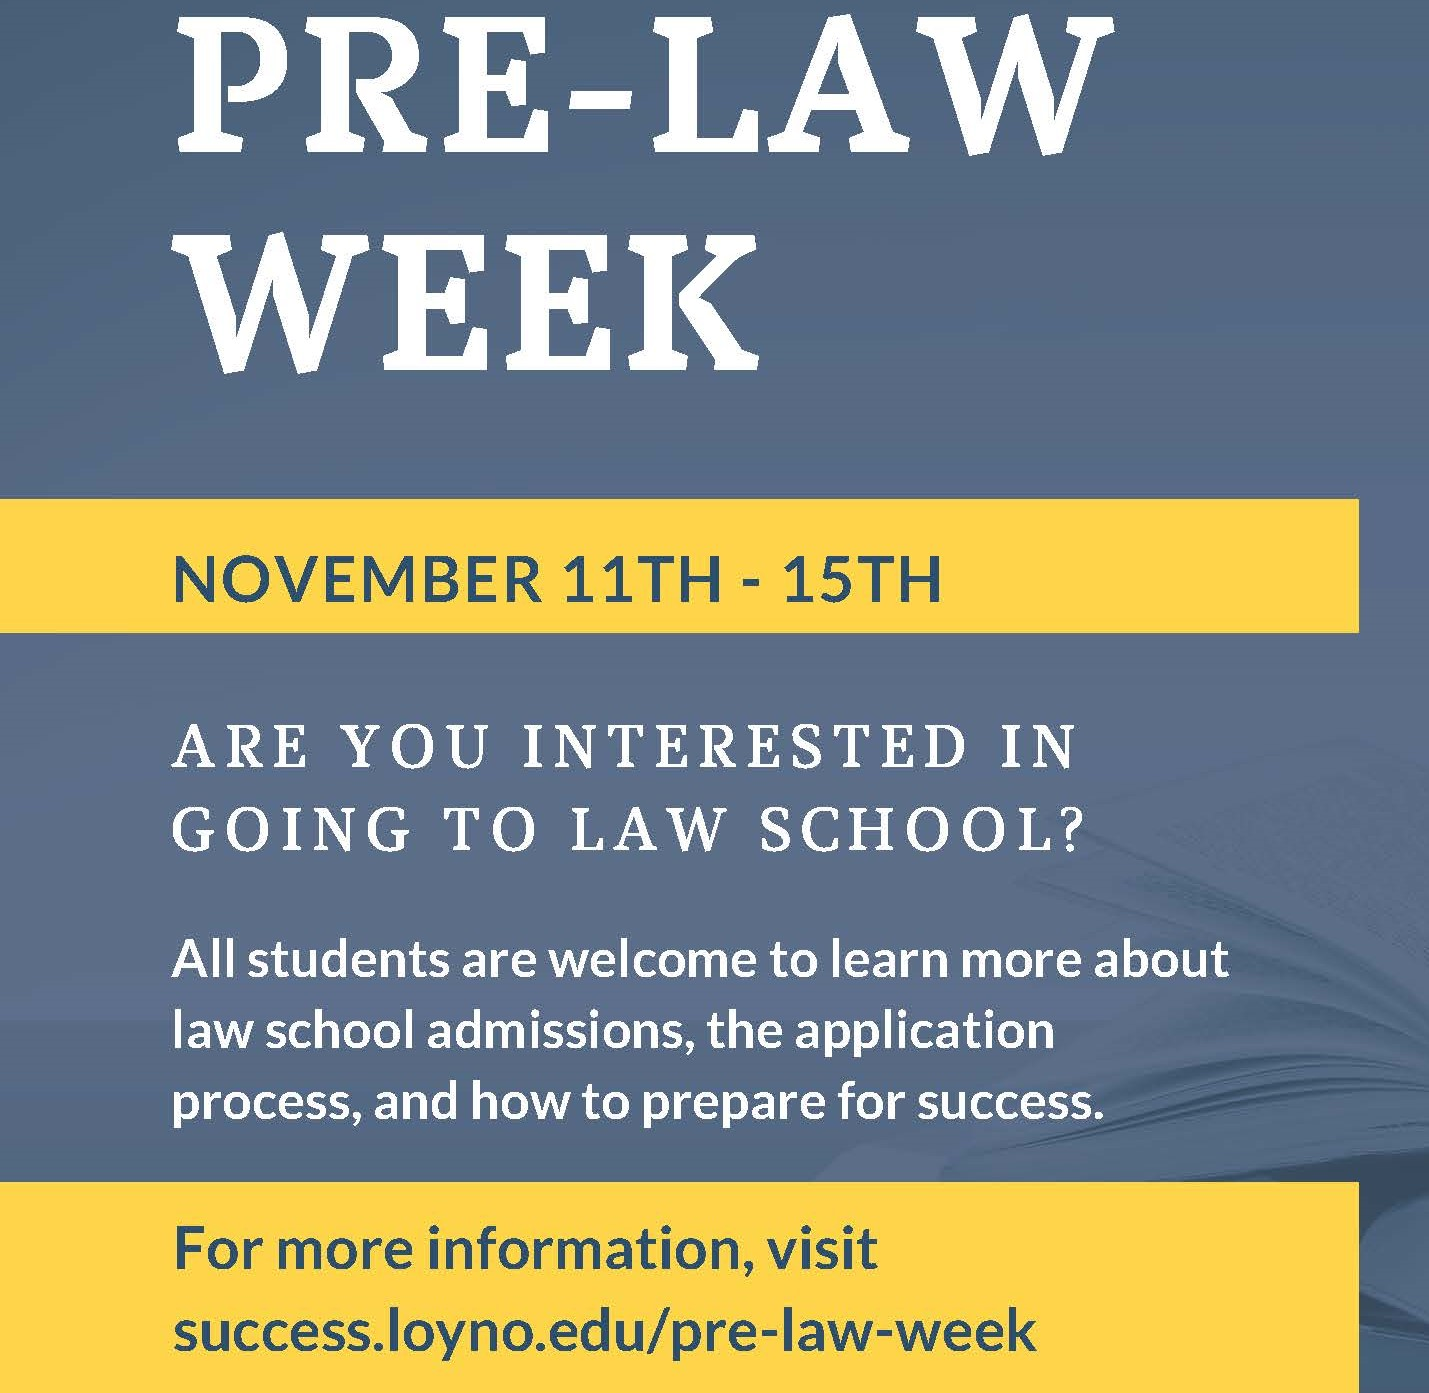 Pre Law Week text. Blue background with text: November 11-15